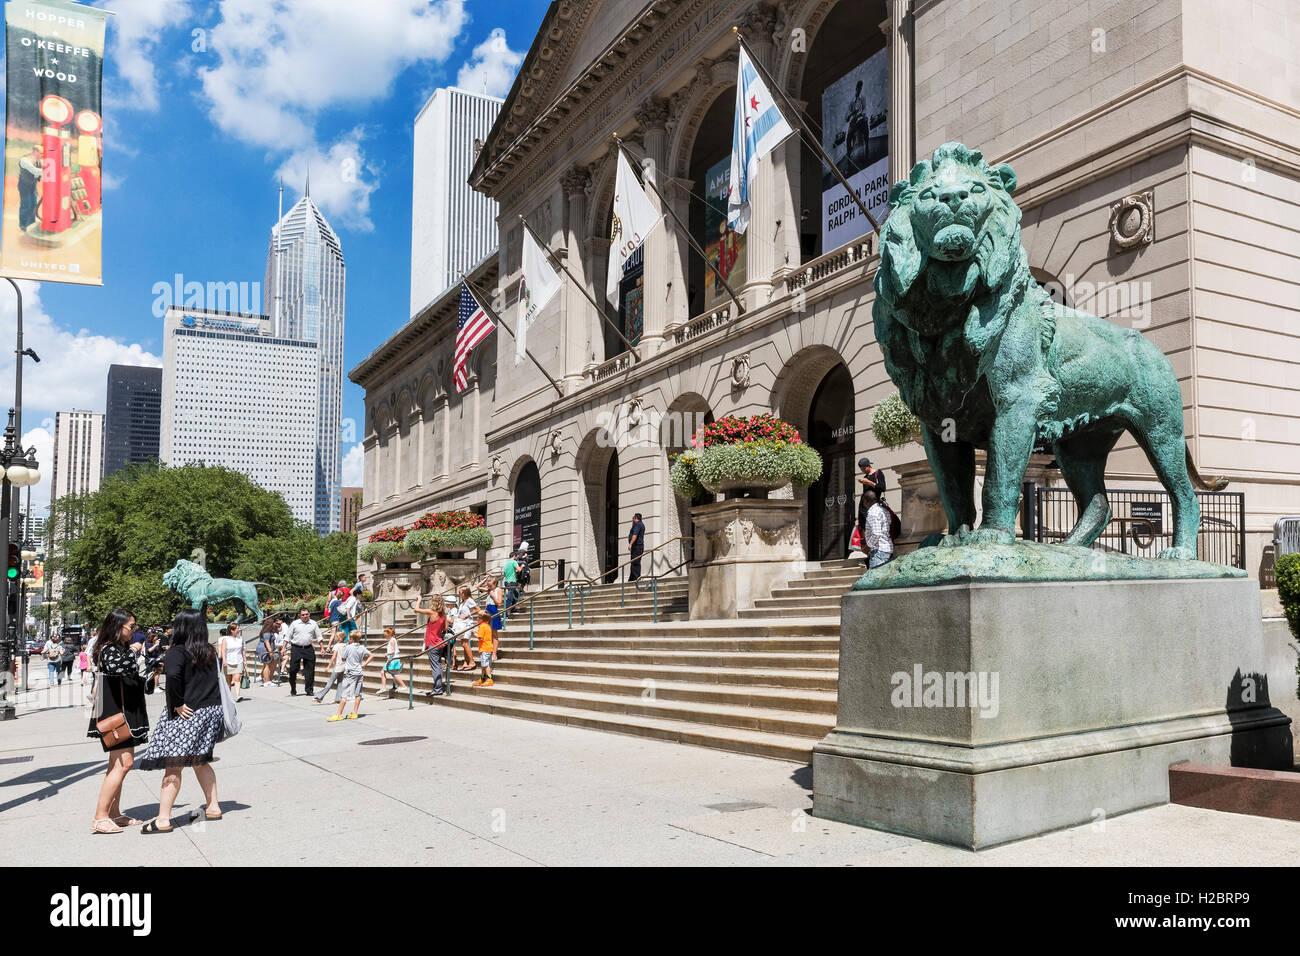 Art Institute of Chicago, Illinois - Stock Image